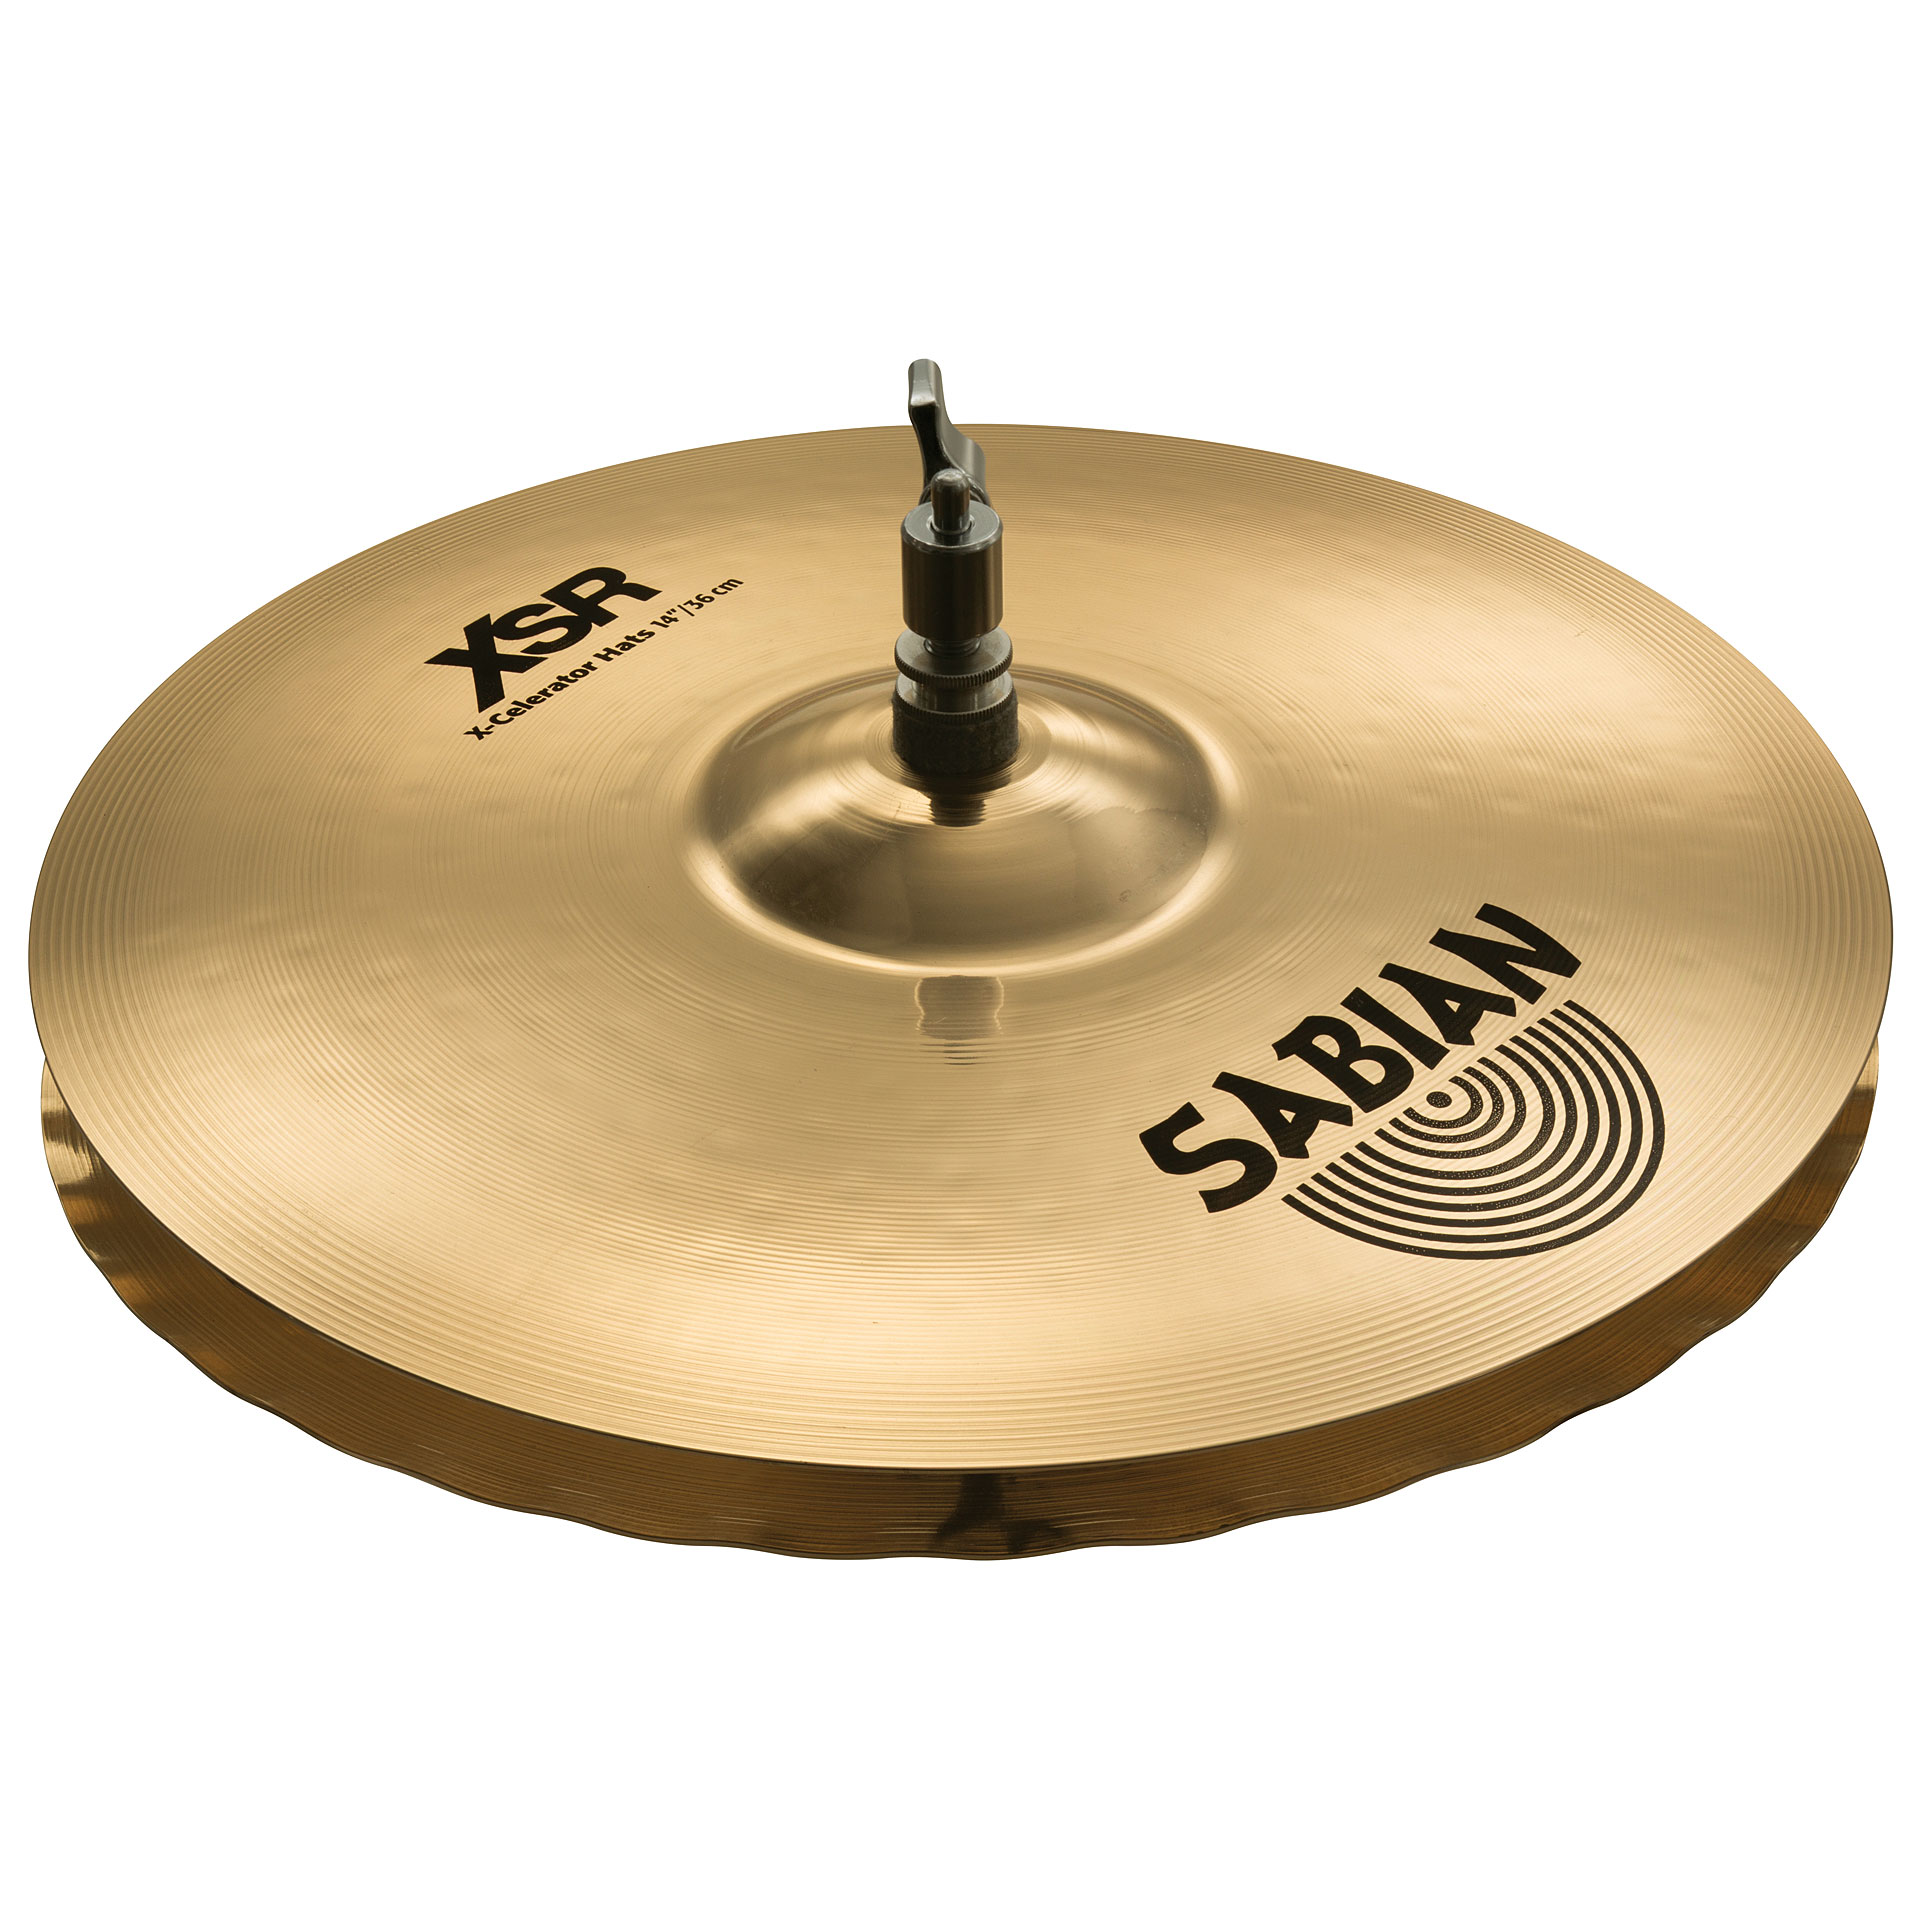 hi hat Products 1 - 42 of 141  only at sweetwater ✅ 0% financing, ✅ free shipping, and ✅ free tech  support for hi-hat cymbals.